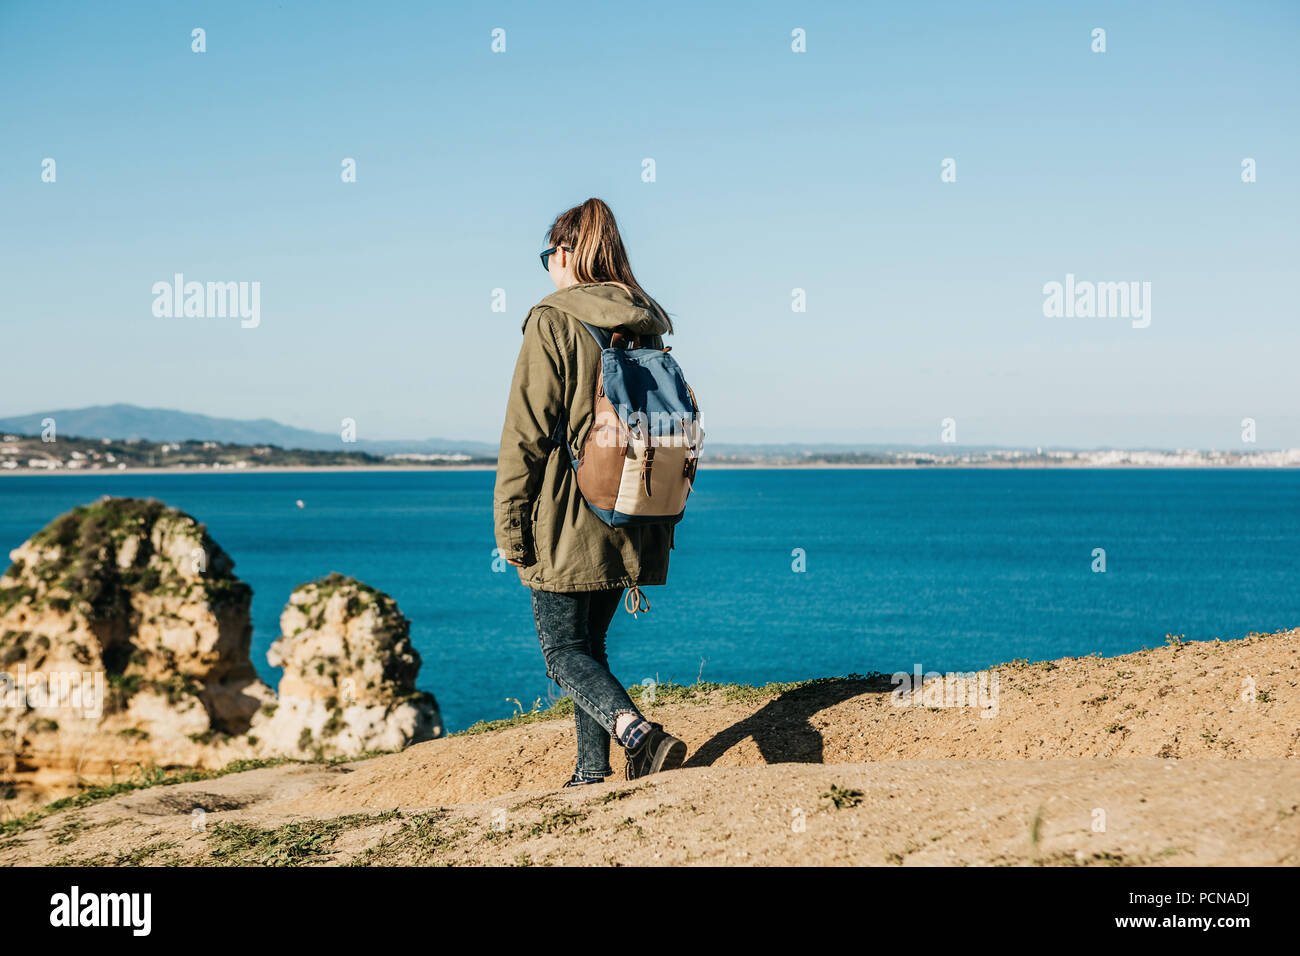 A girl tourist or traveler with a backpack walks along the rocky coast and admires the beautiful view of the Atlantic Ocean in Portugal Stock Photo